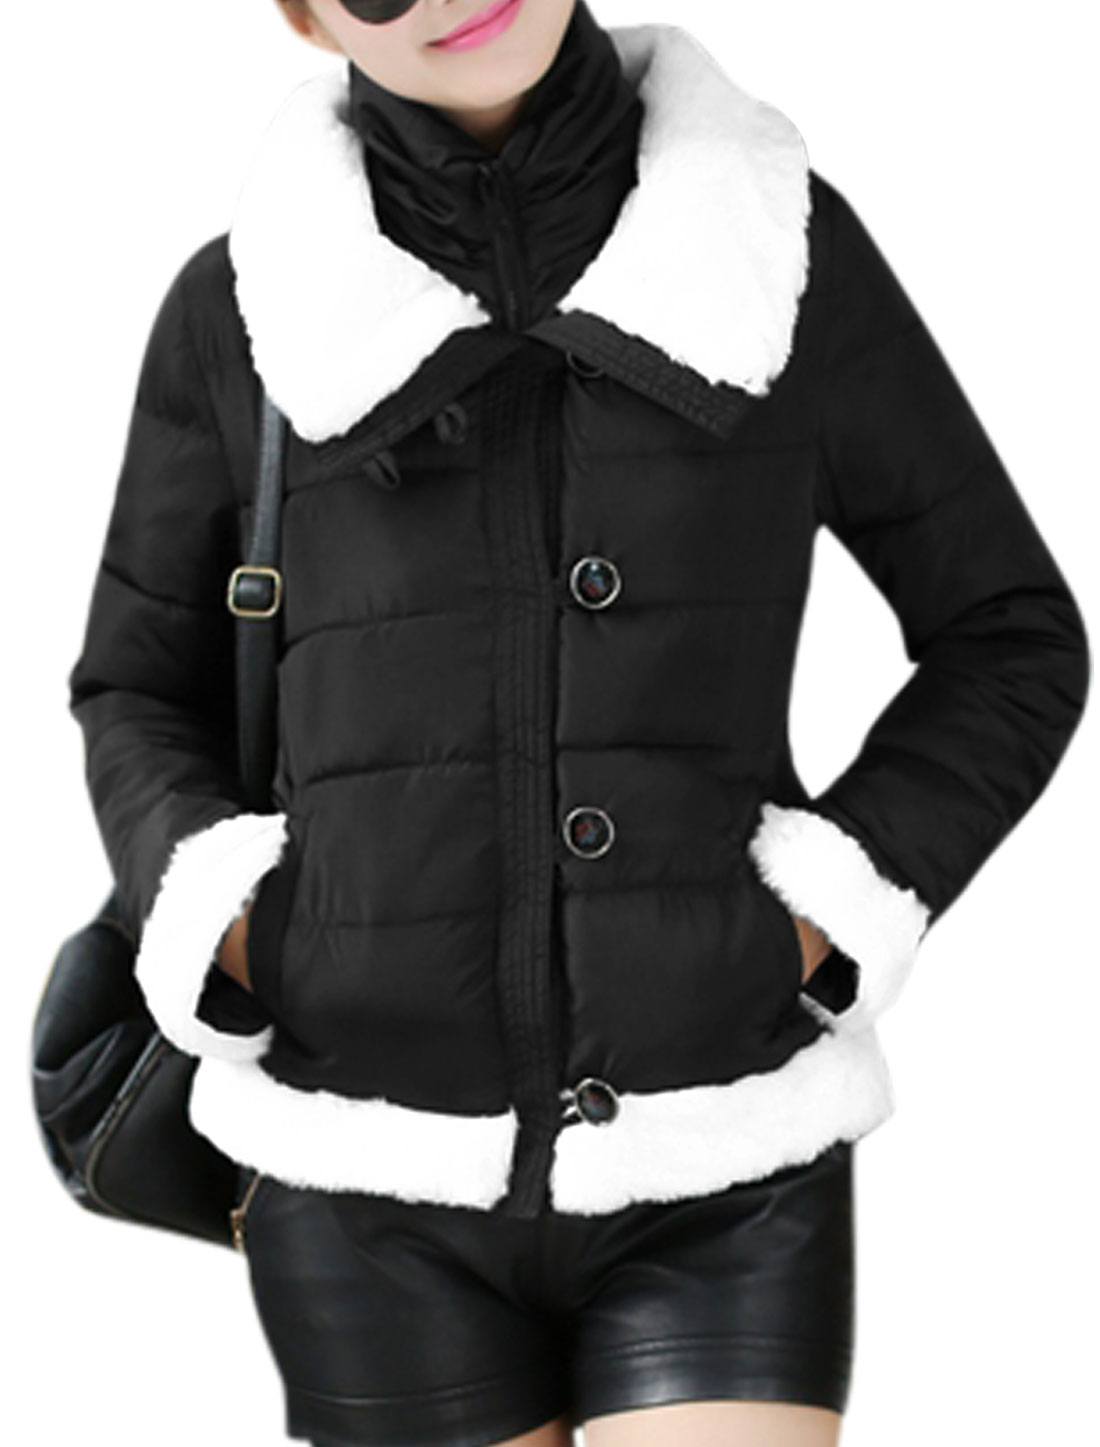 Women Convertible Collar Zip Up Button Closed Padded Coat Black M